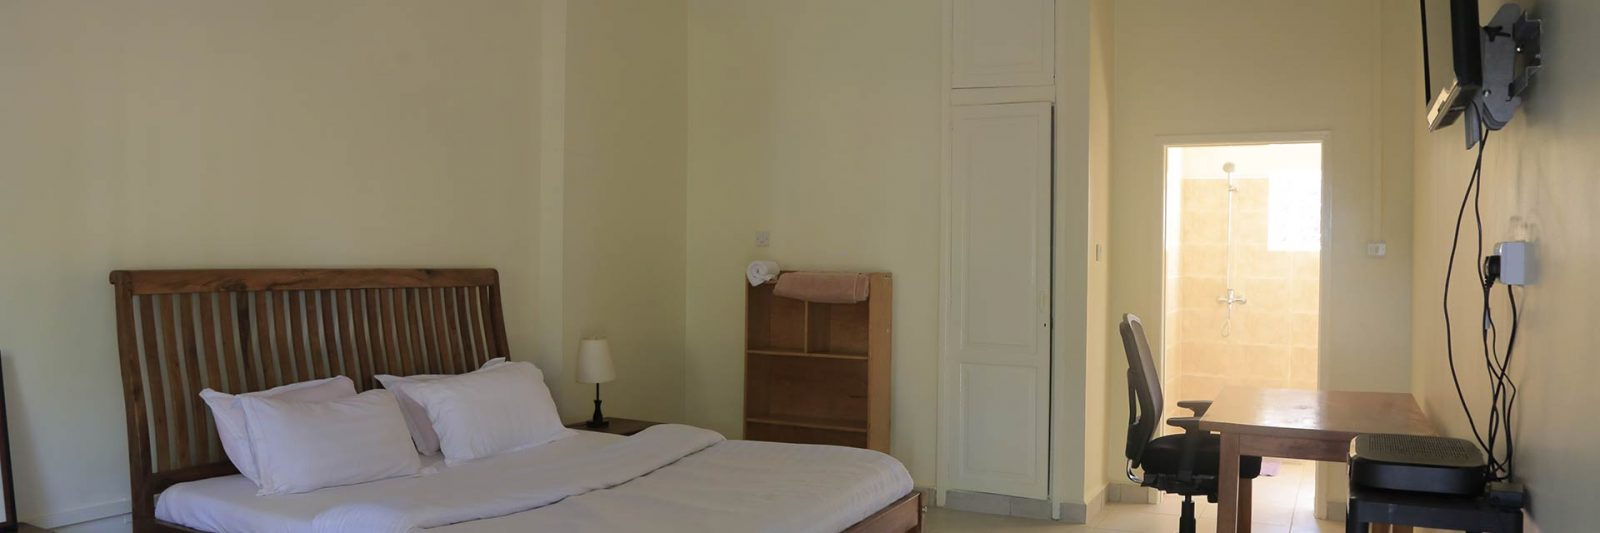 en-suite Double Bed Room - Entebbe Palm Hotel